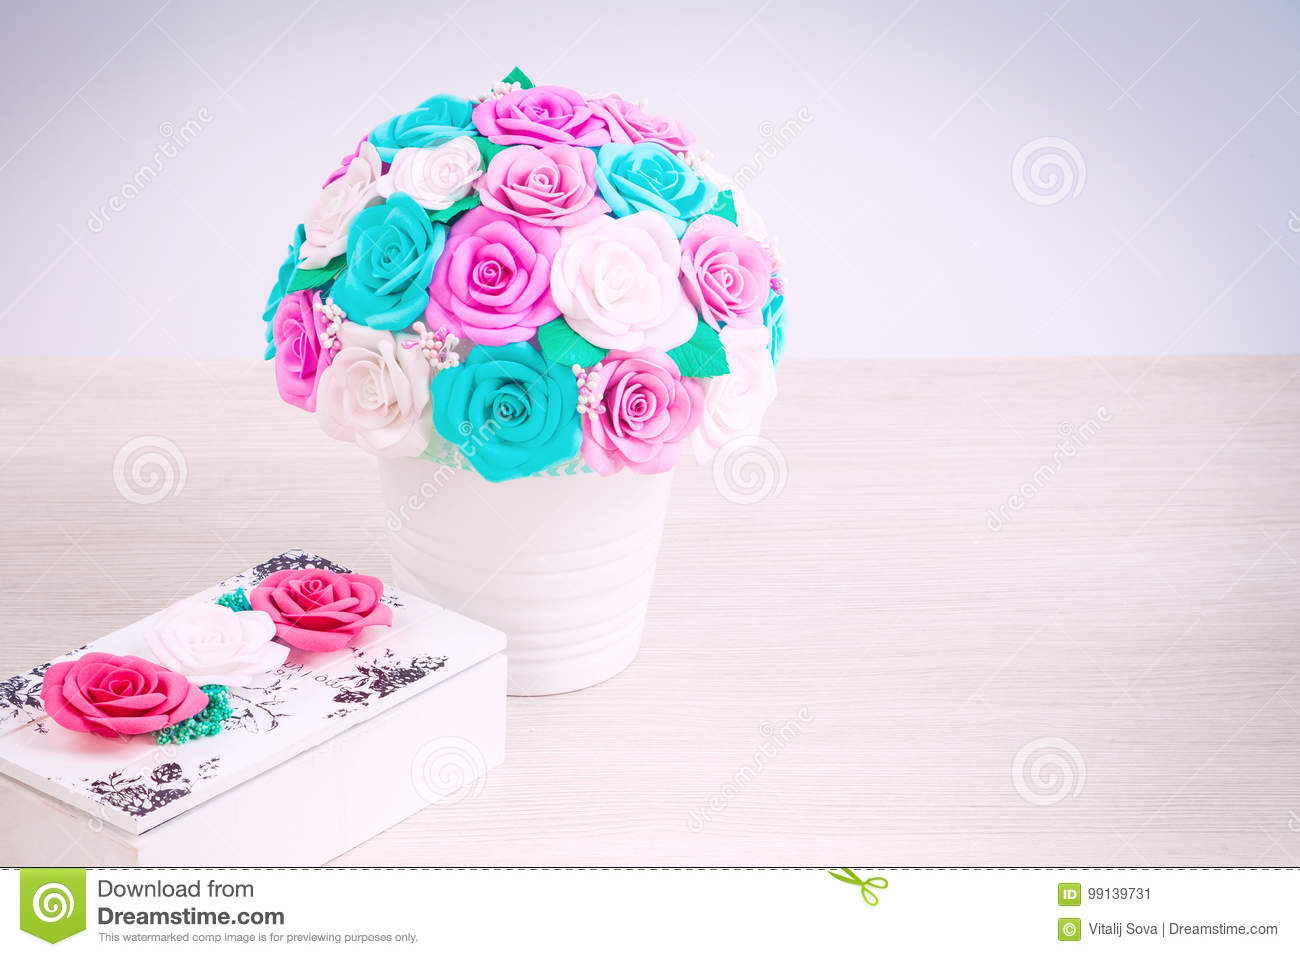 Artificial flowers roses from foam stock image image of card artificial flowers roses from foam mightylinksfo